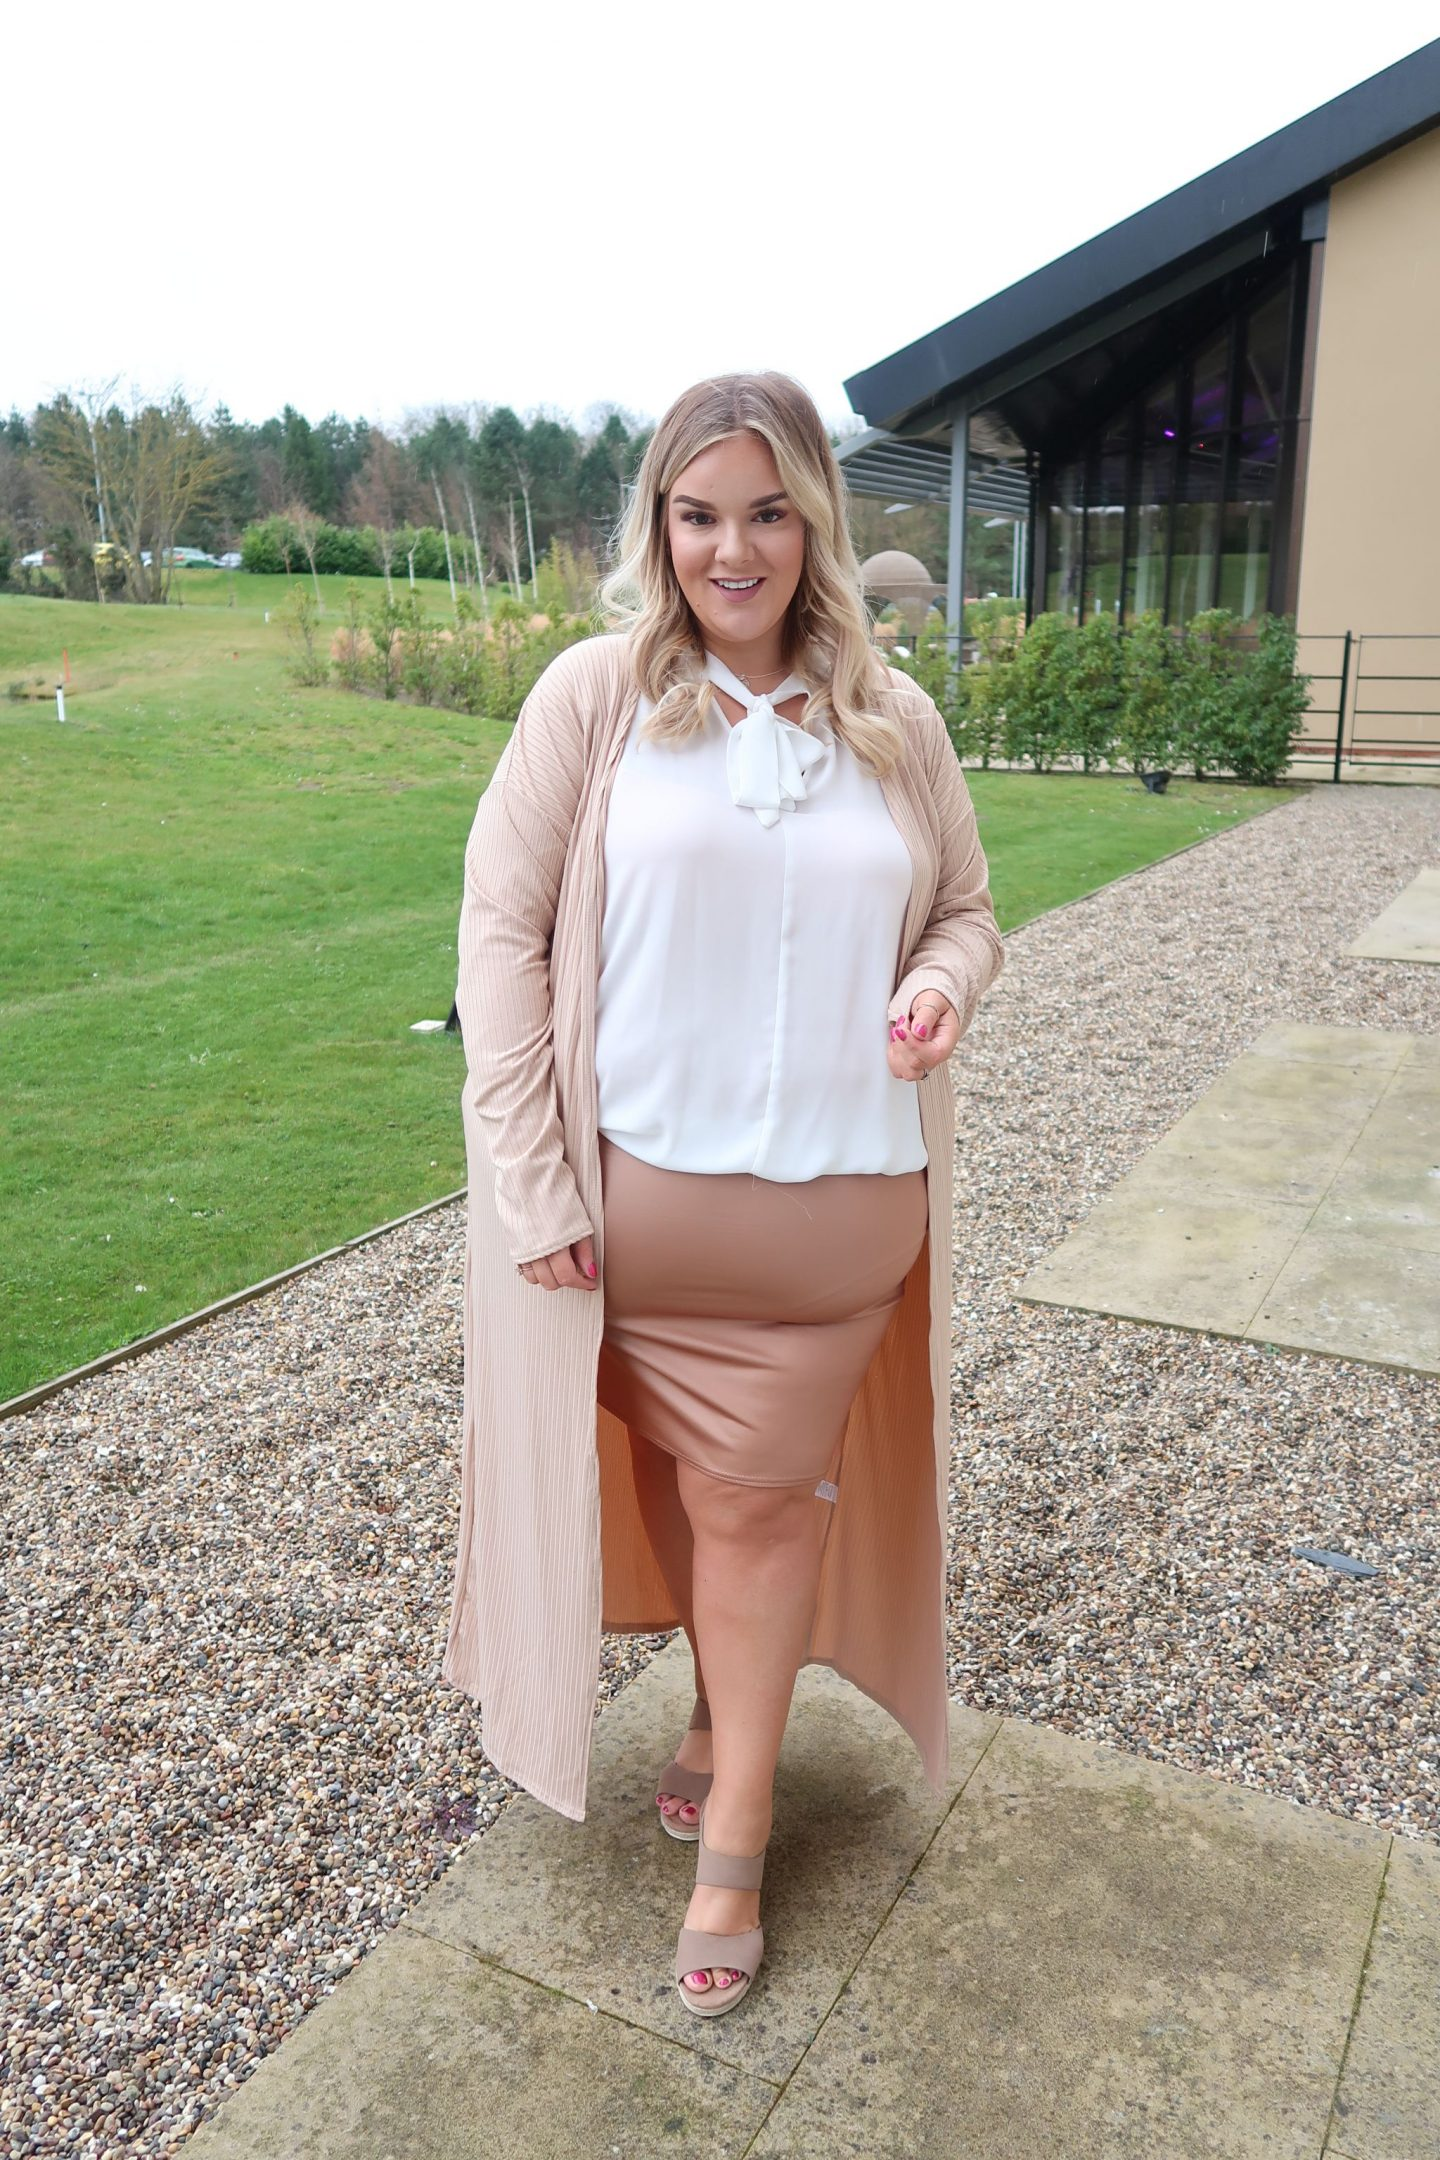 WhatLauraLoves nude monochrome outfit from pink clove at Ramside Hall